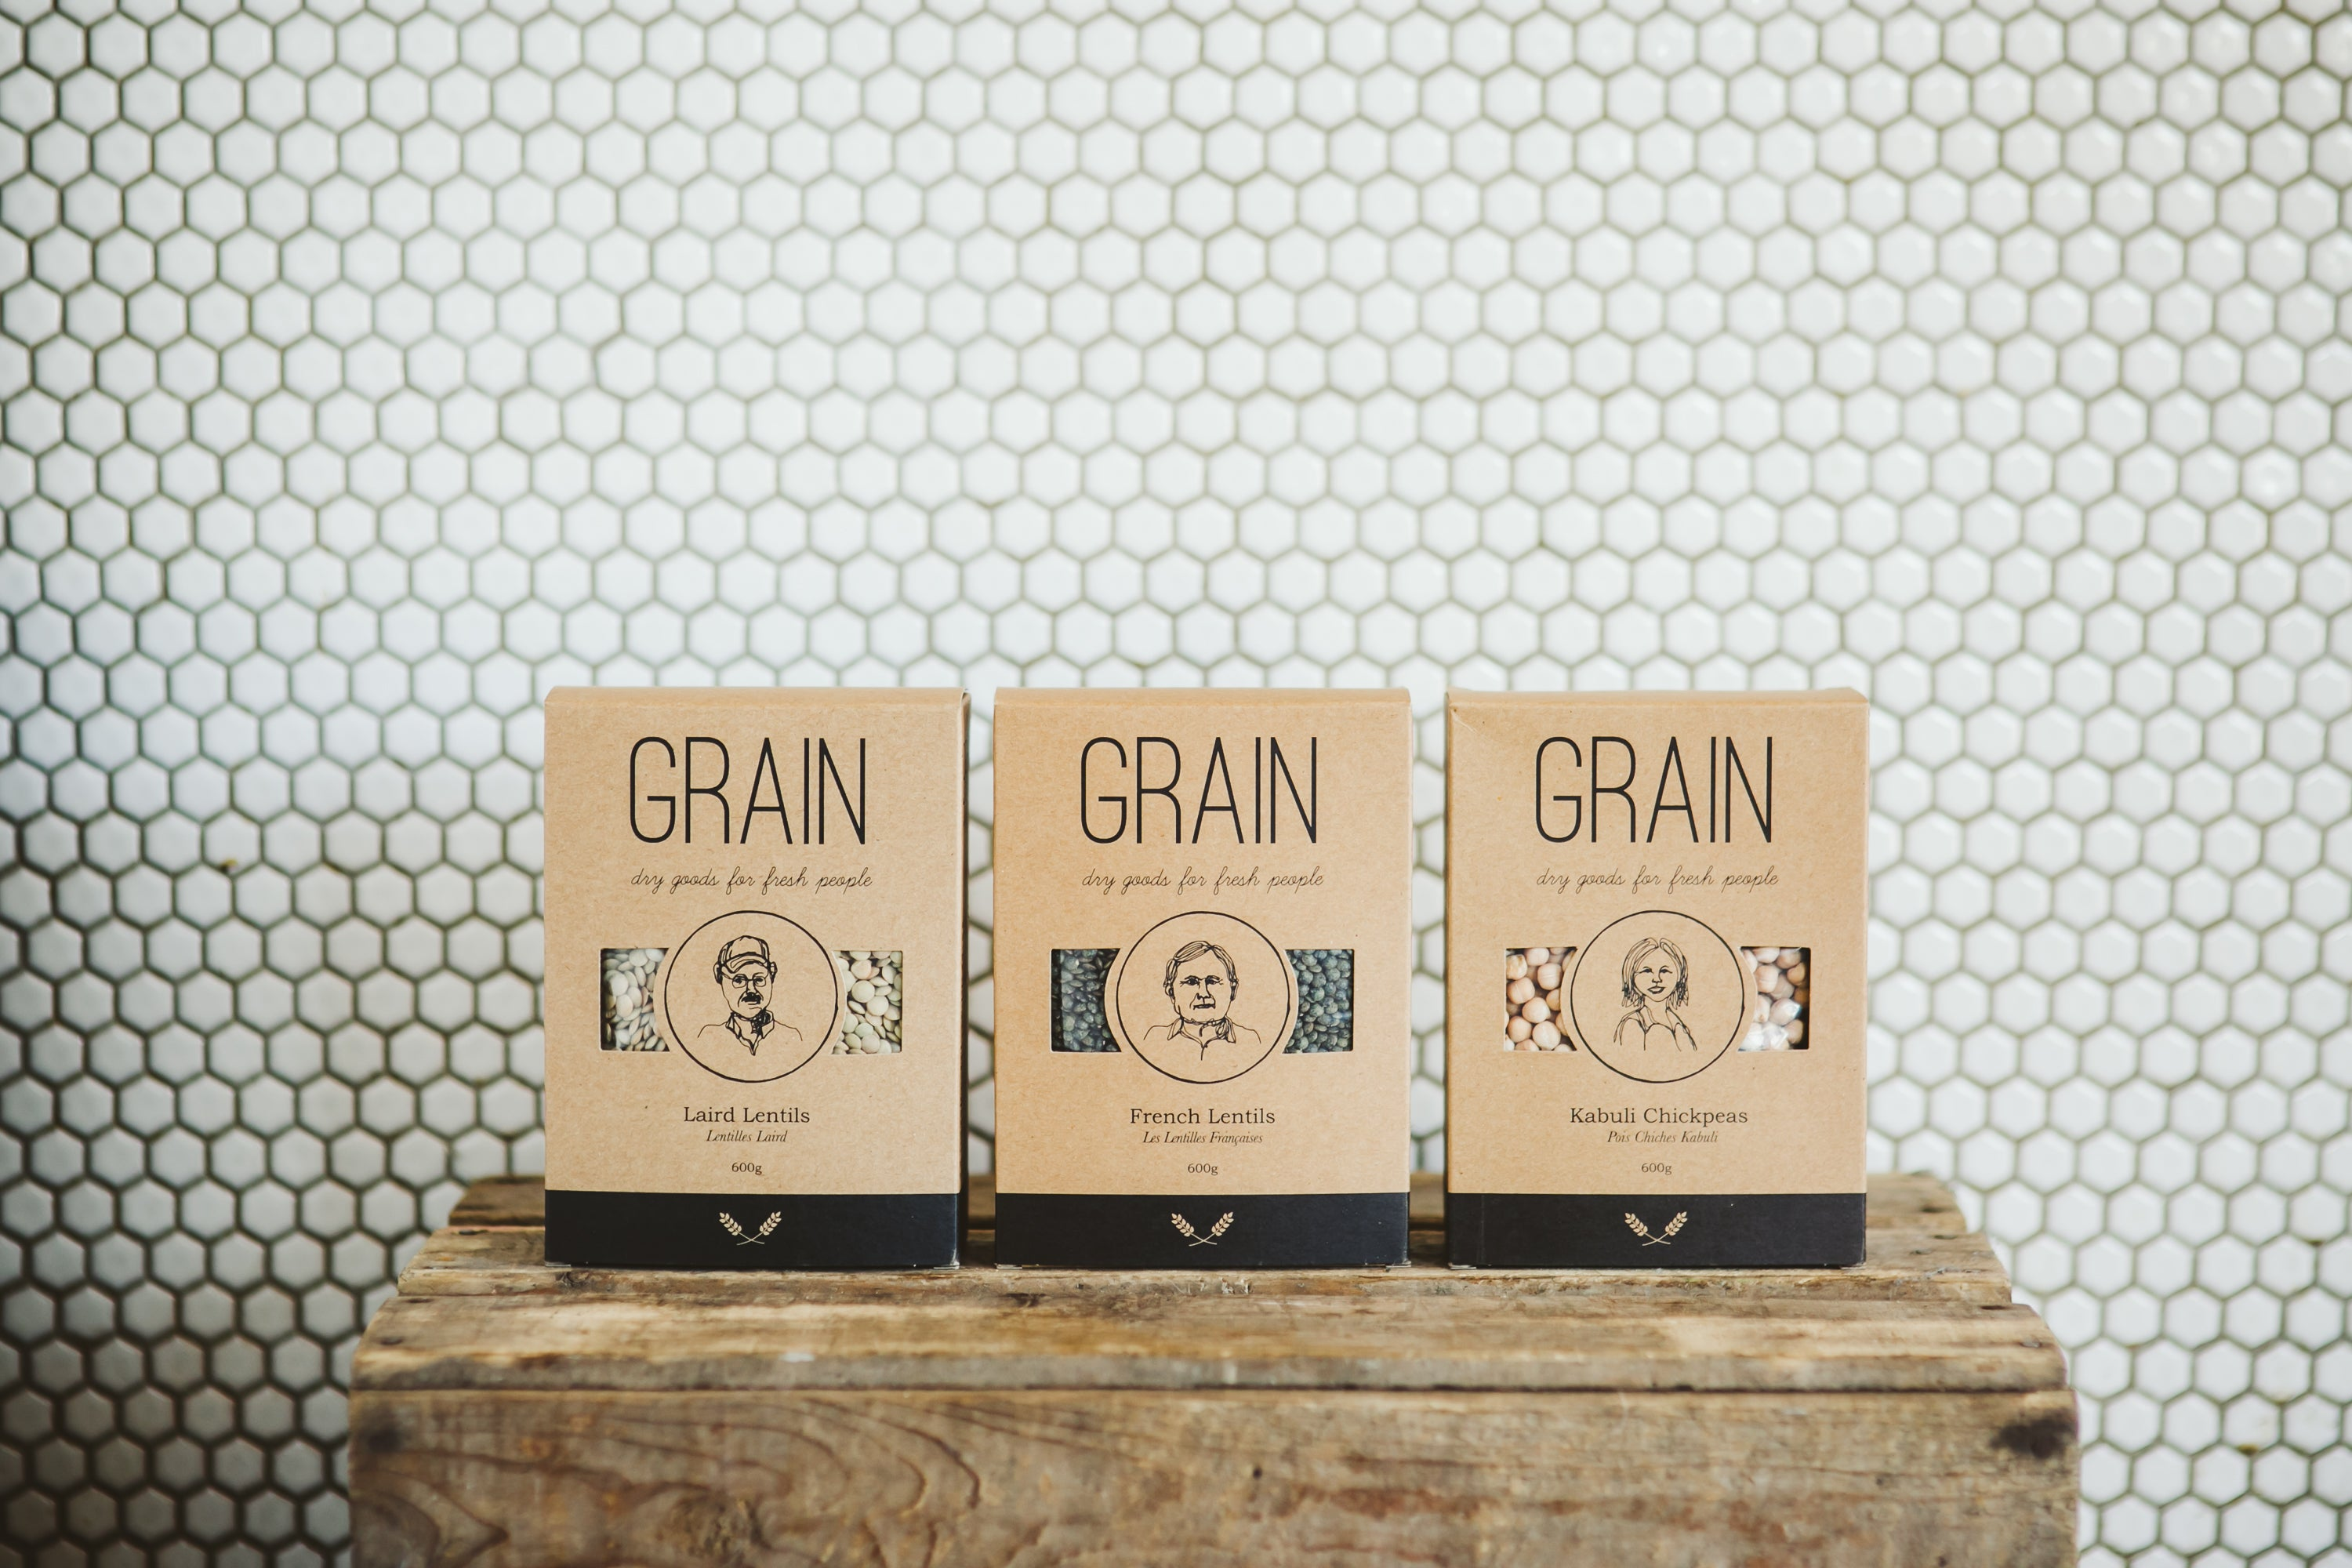 GRAIN dry goods for fresh people